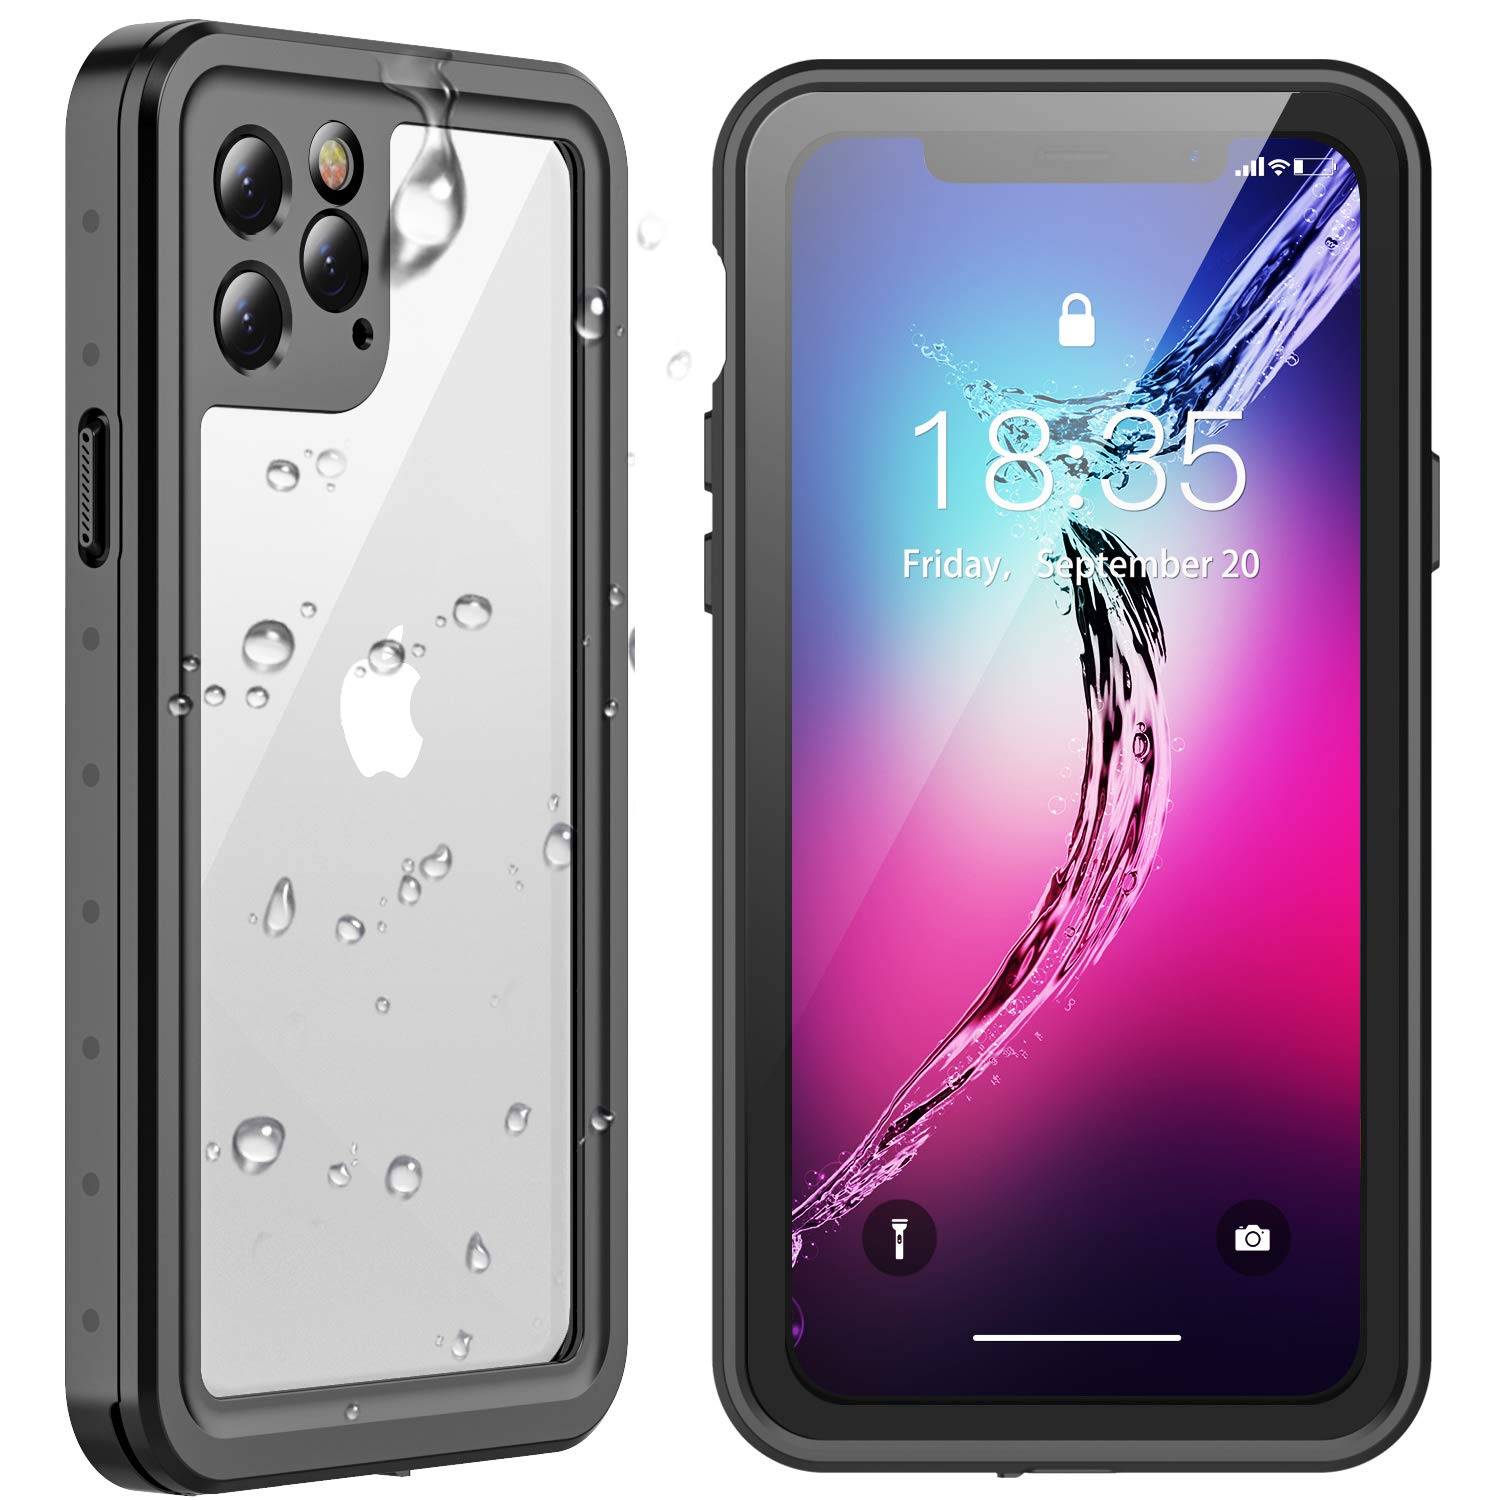 Spidercase waterproof iPhone 11 case